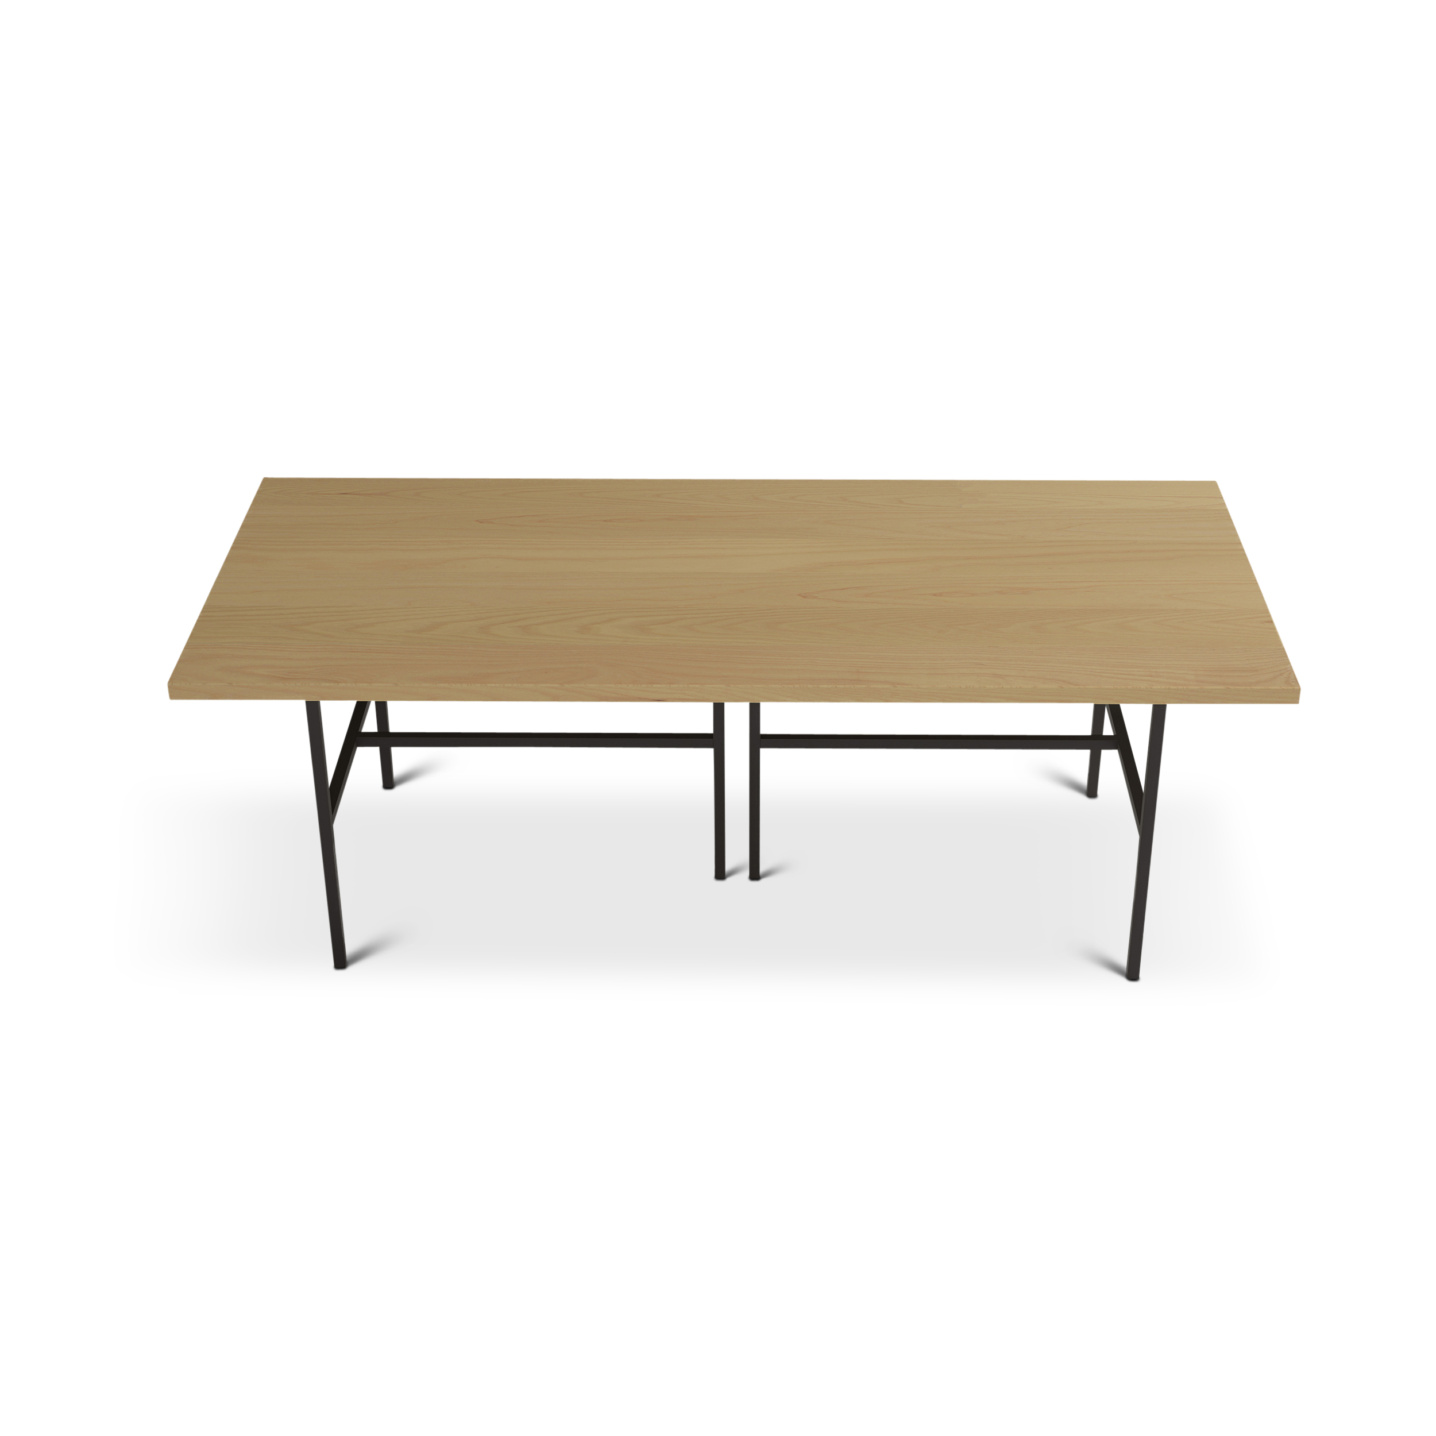 7 foot ash dining room table with black metal legs